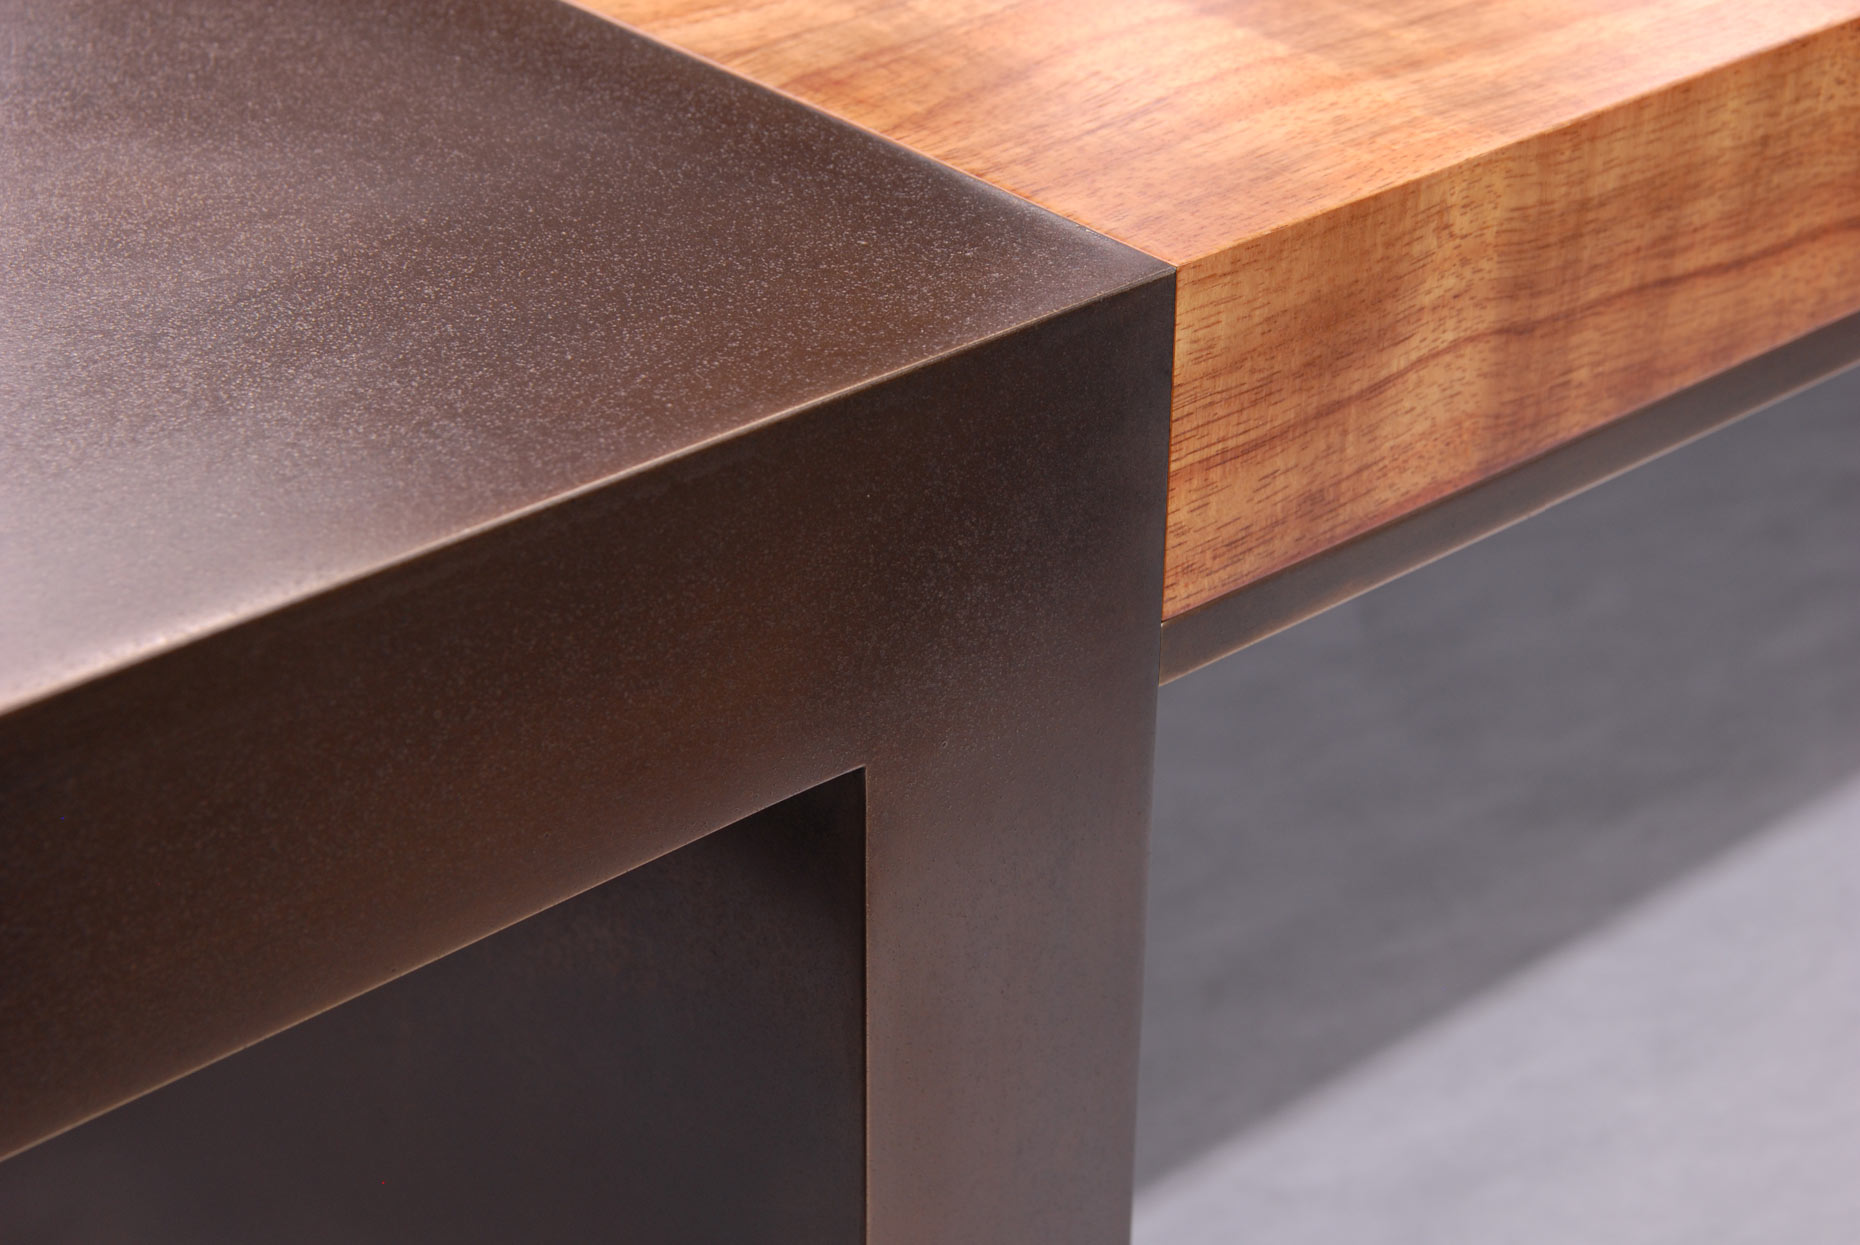 004Mongillo-250-Table-Detail_FIX